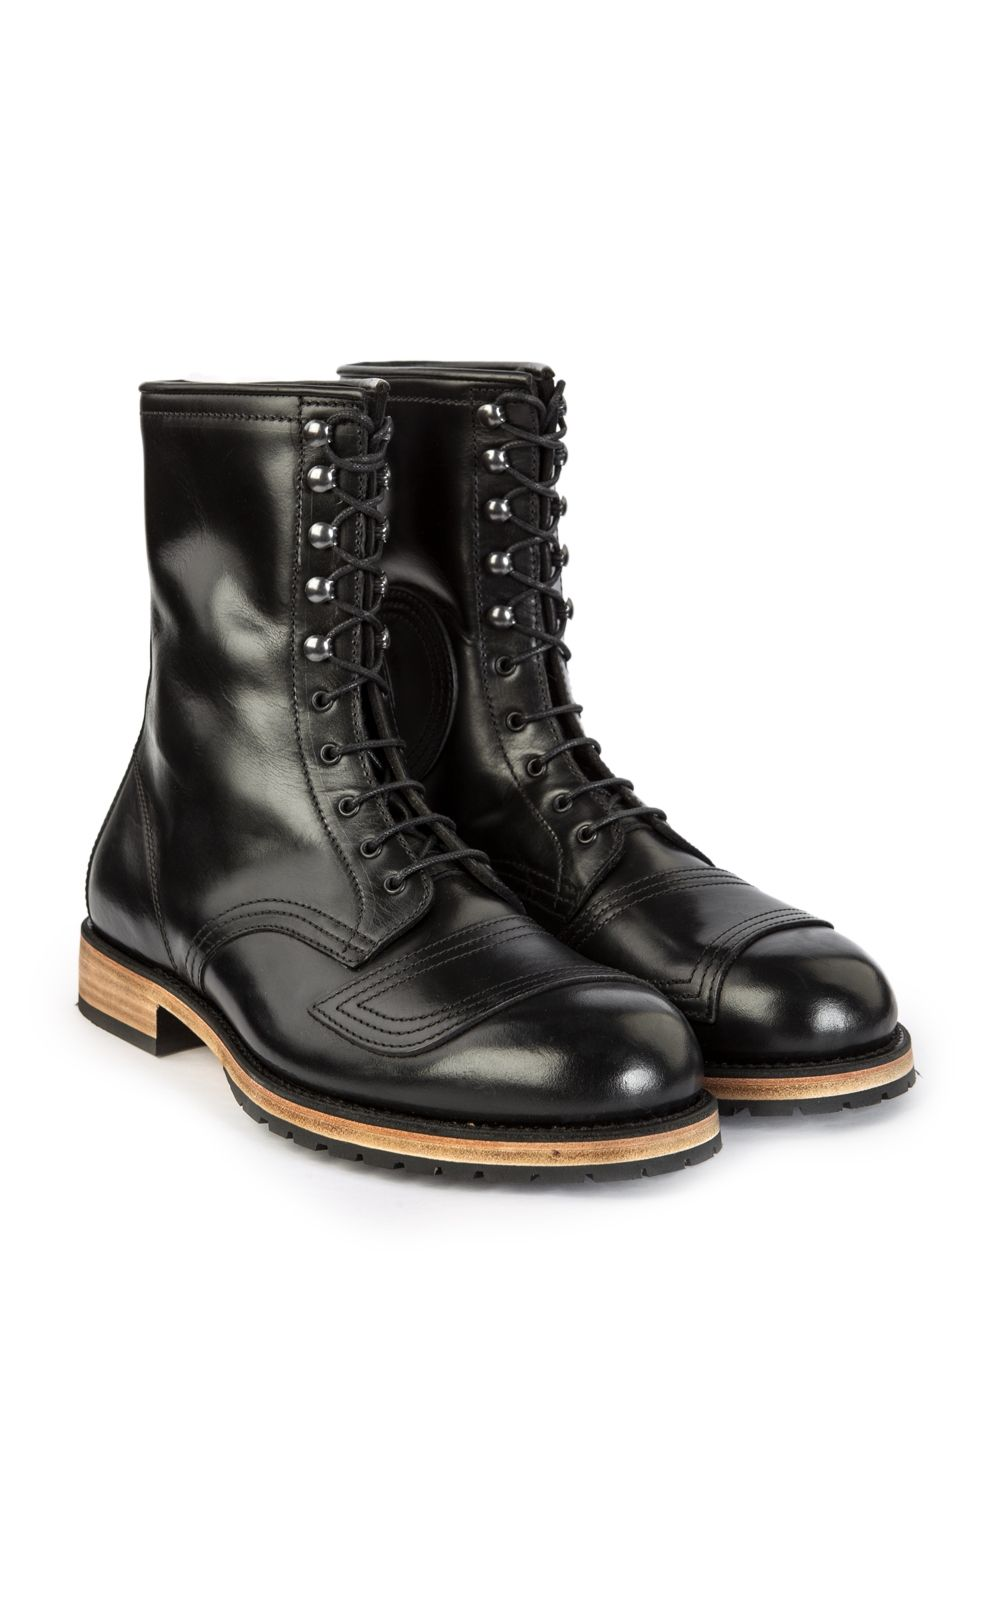 Pike Brothers 1966 Explorer Boots Black